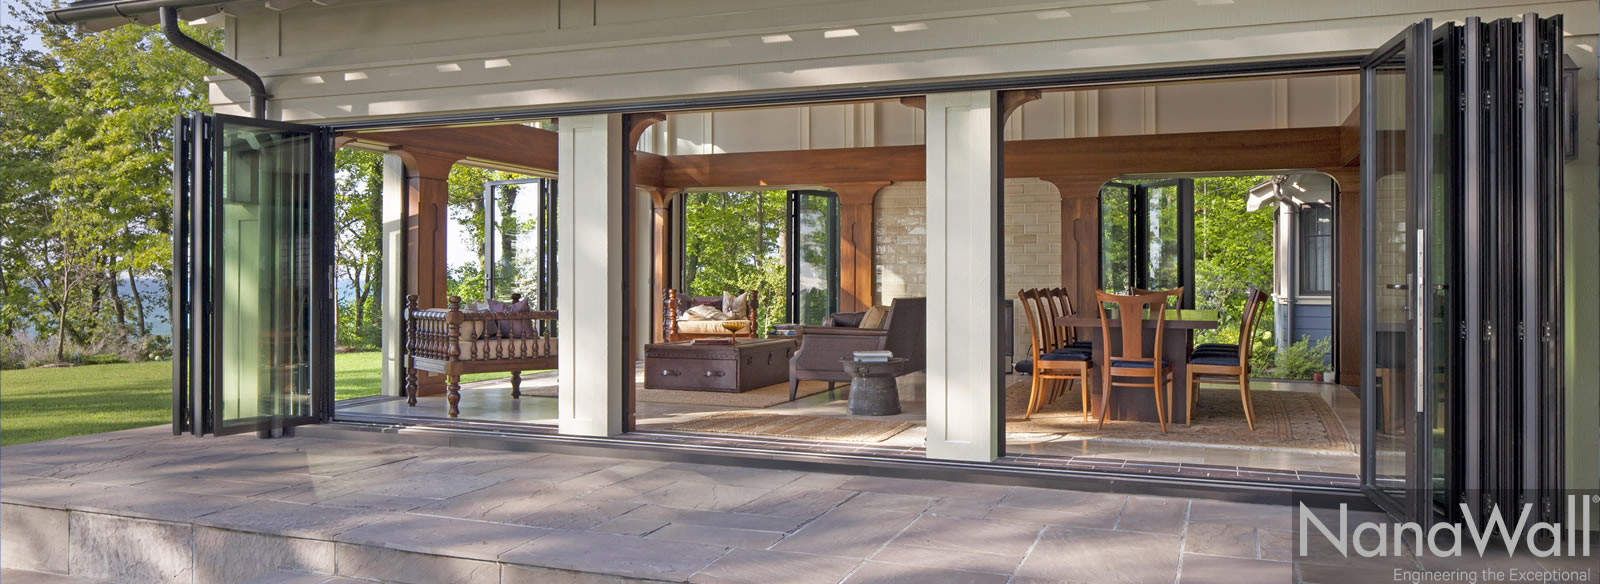 Redefine Boundaries with Nanawall & Nanawall | Architectural Windows And Doors Chicago - Nanawall Steel ...